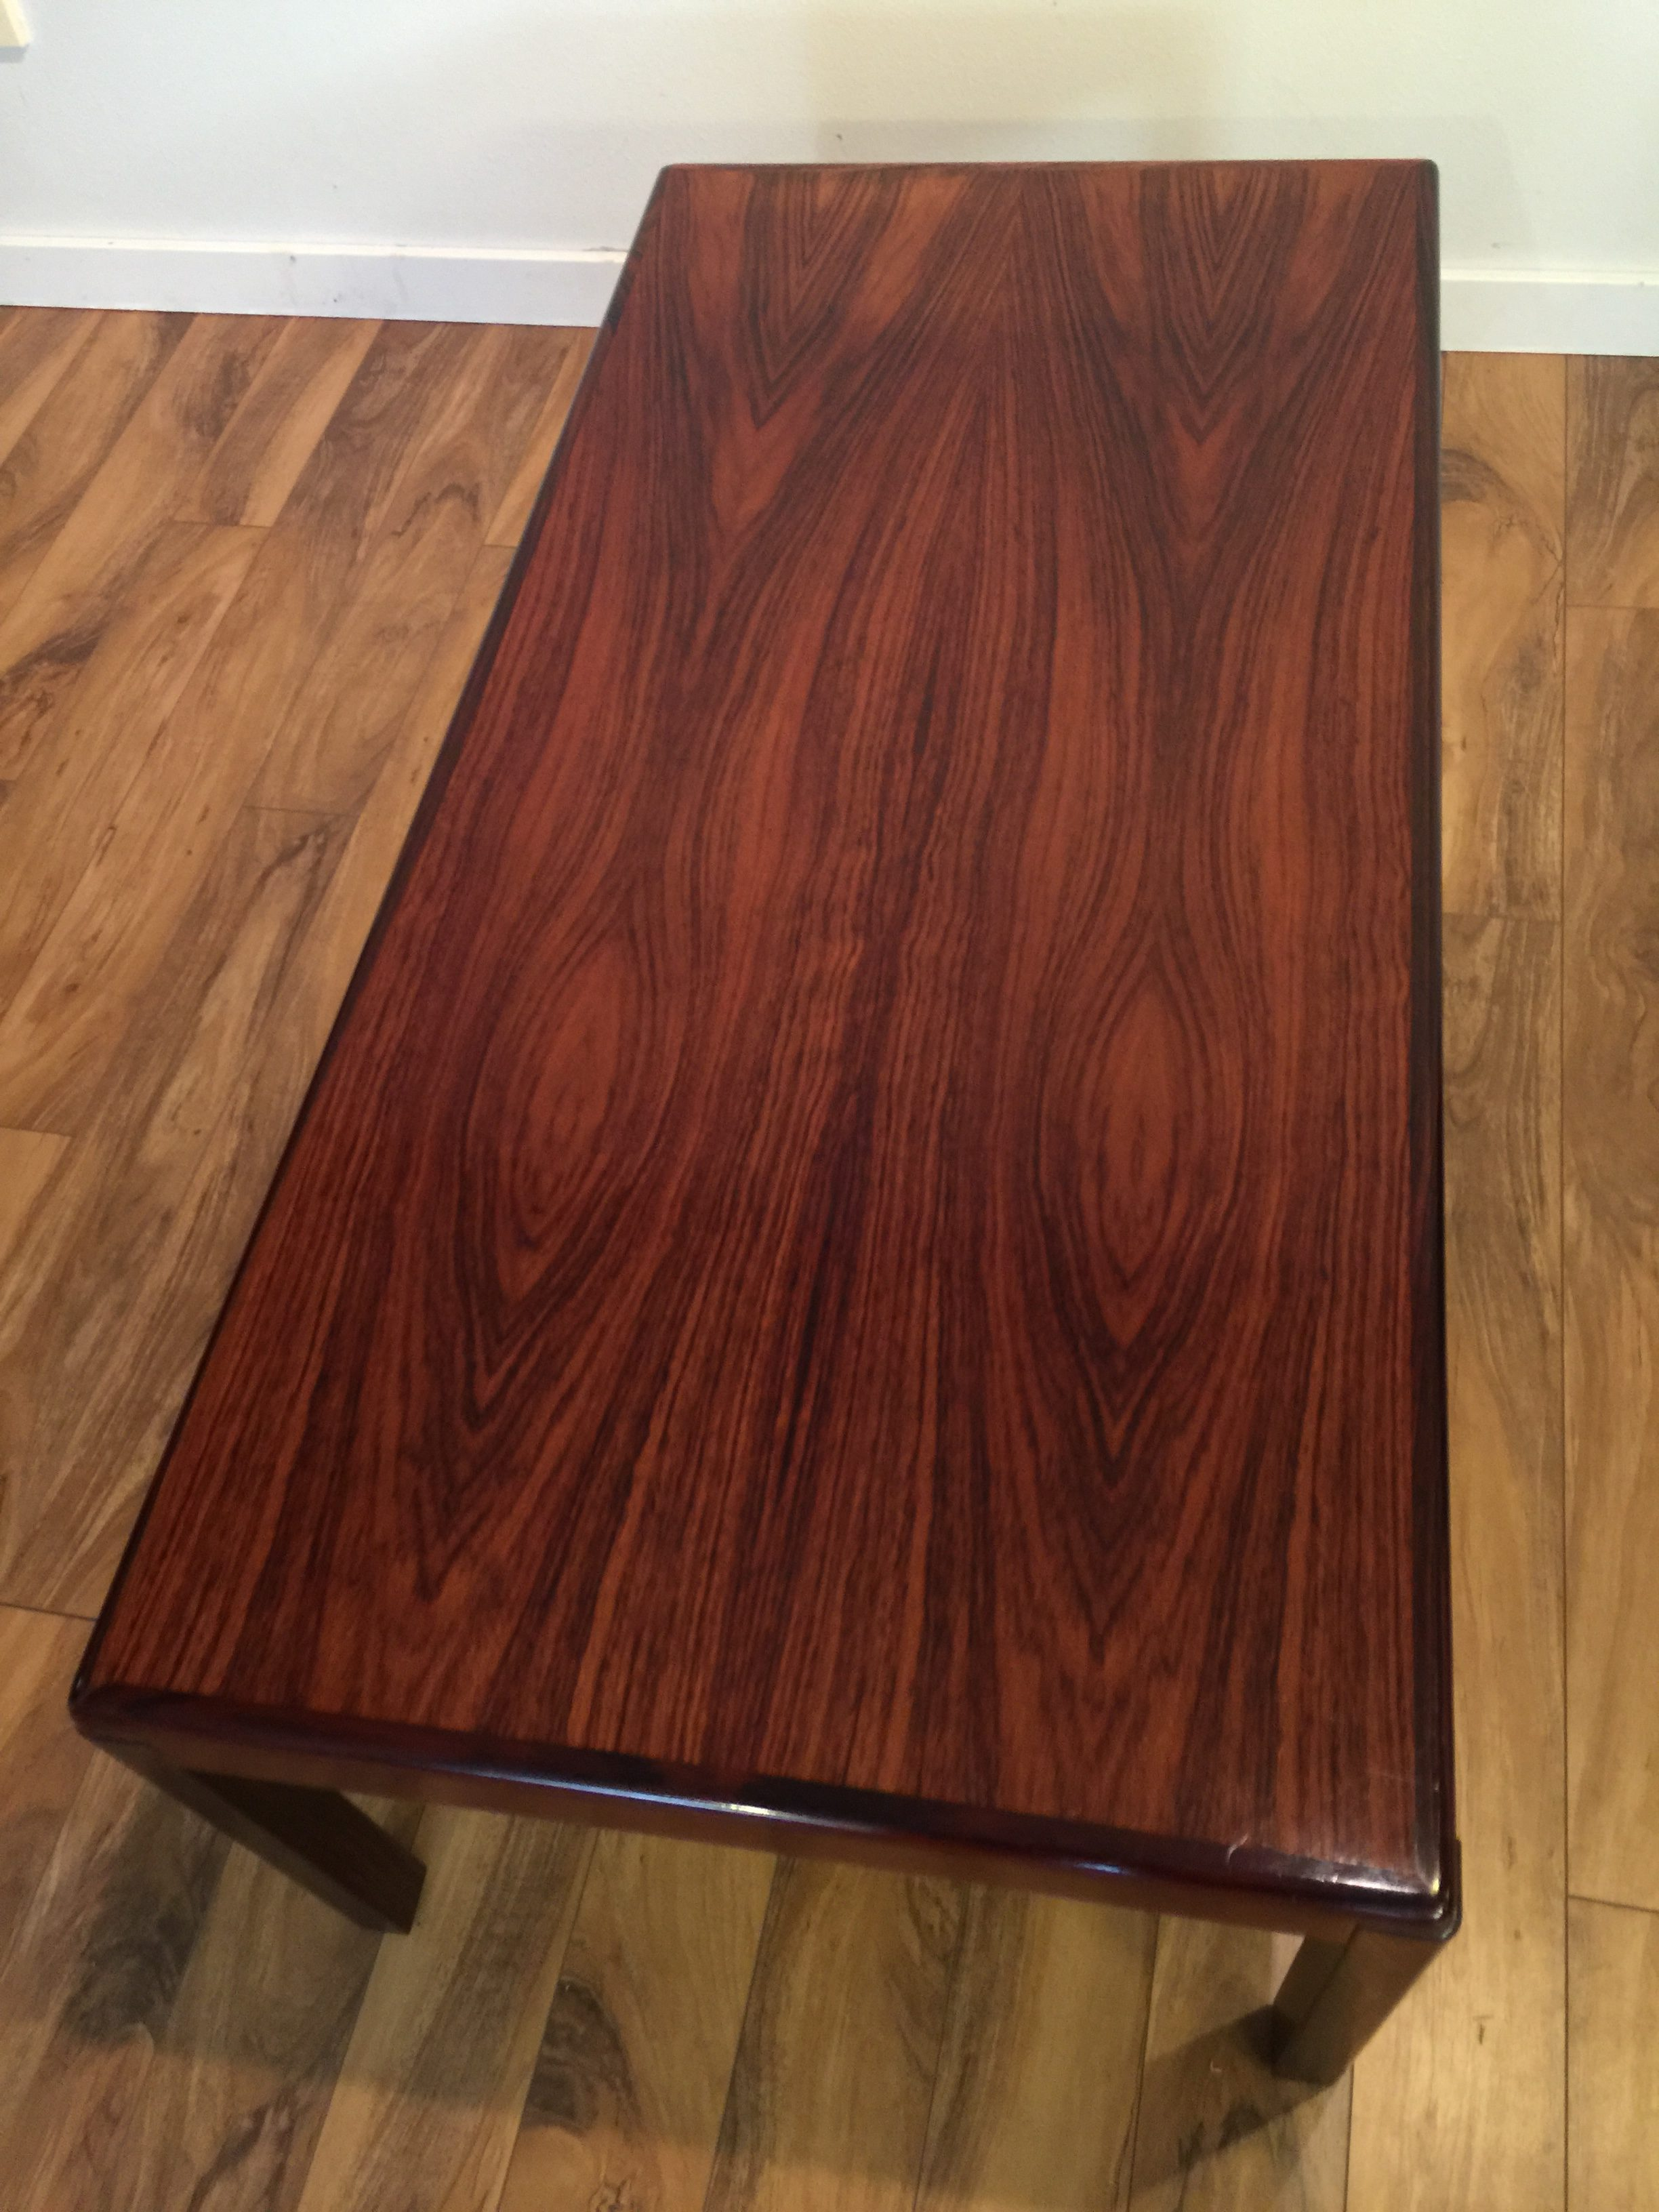 Sold Vejle Stole Danish Rosewood Coffee Table Modern